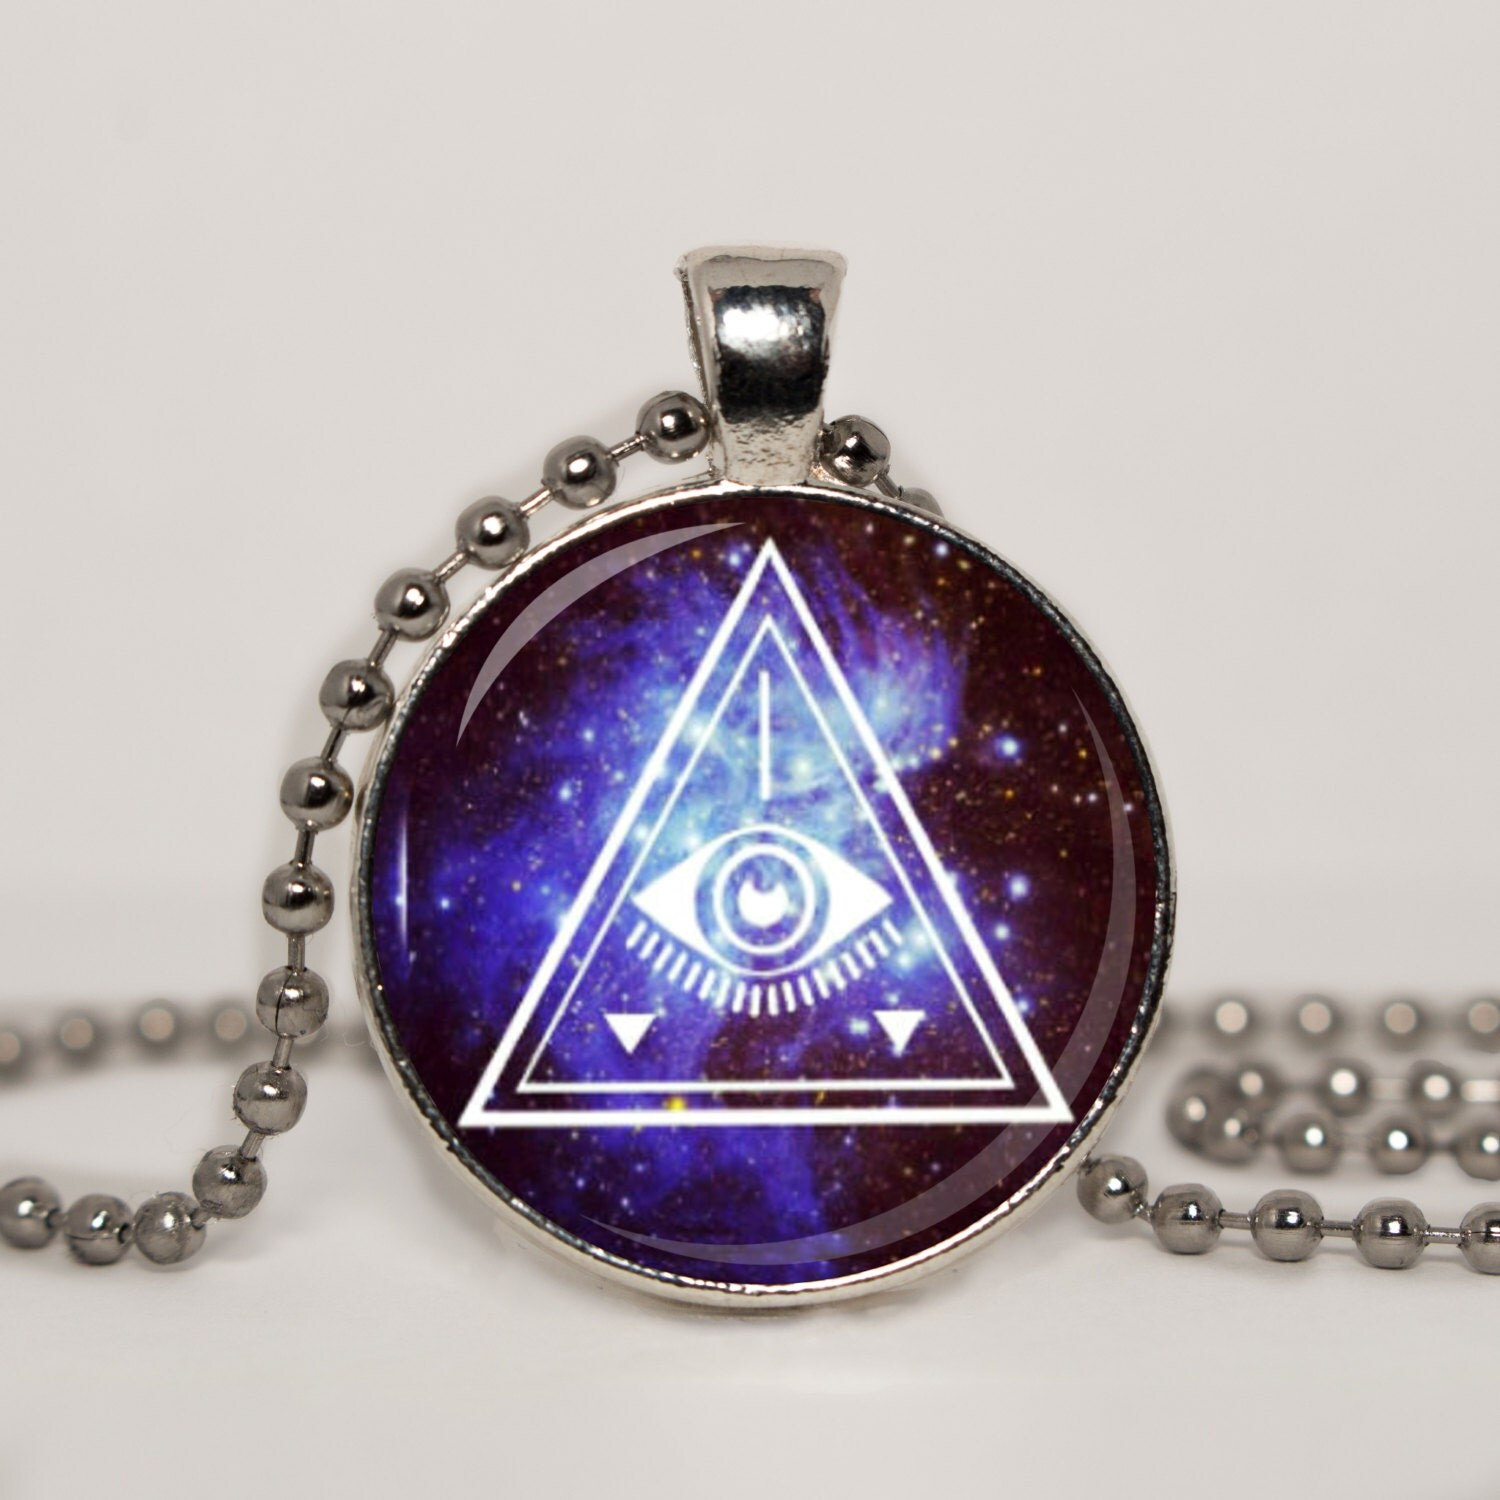 illuminati pendant necklace by starlingdesigns7 on etsy